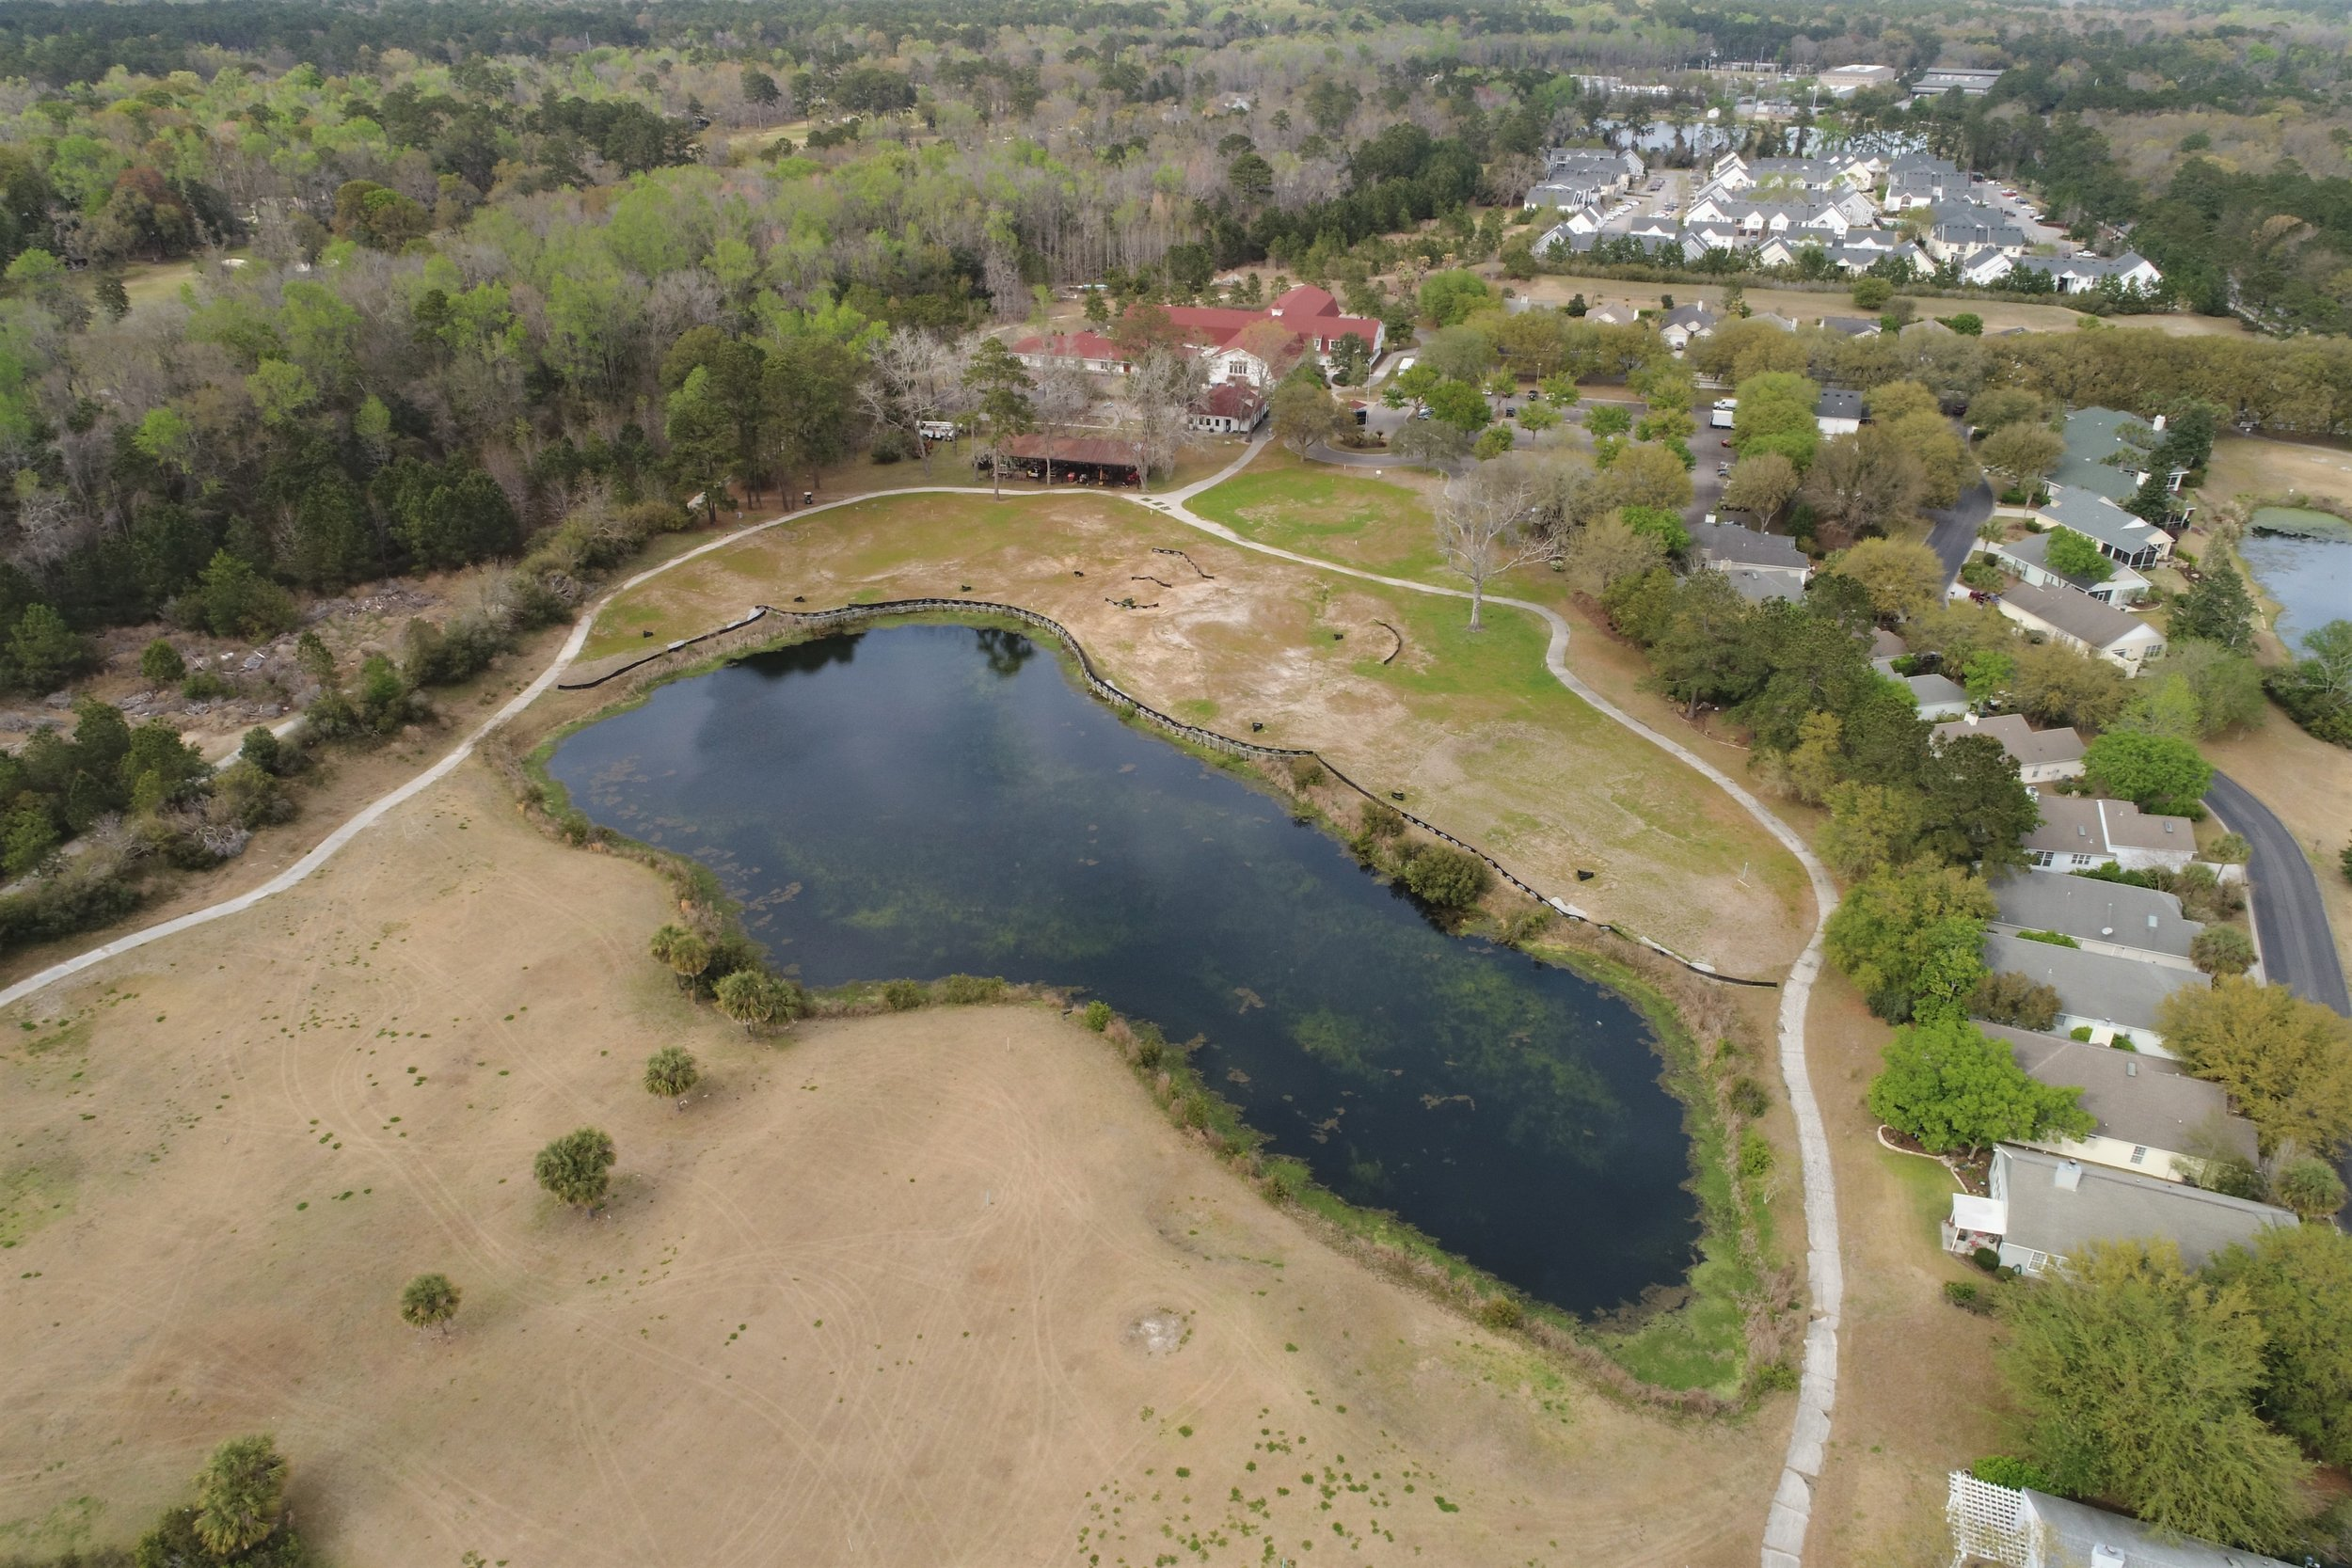 Aerial drone shot of IJGA's breaking ground on Himalaya Greens construction project, early 2018.